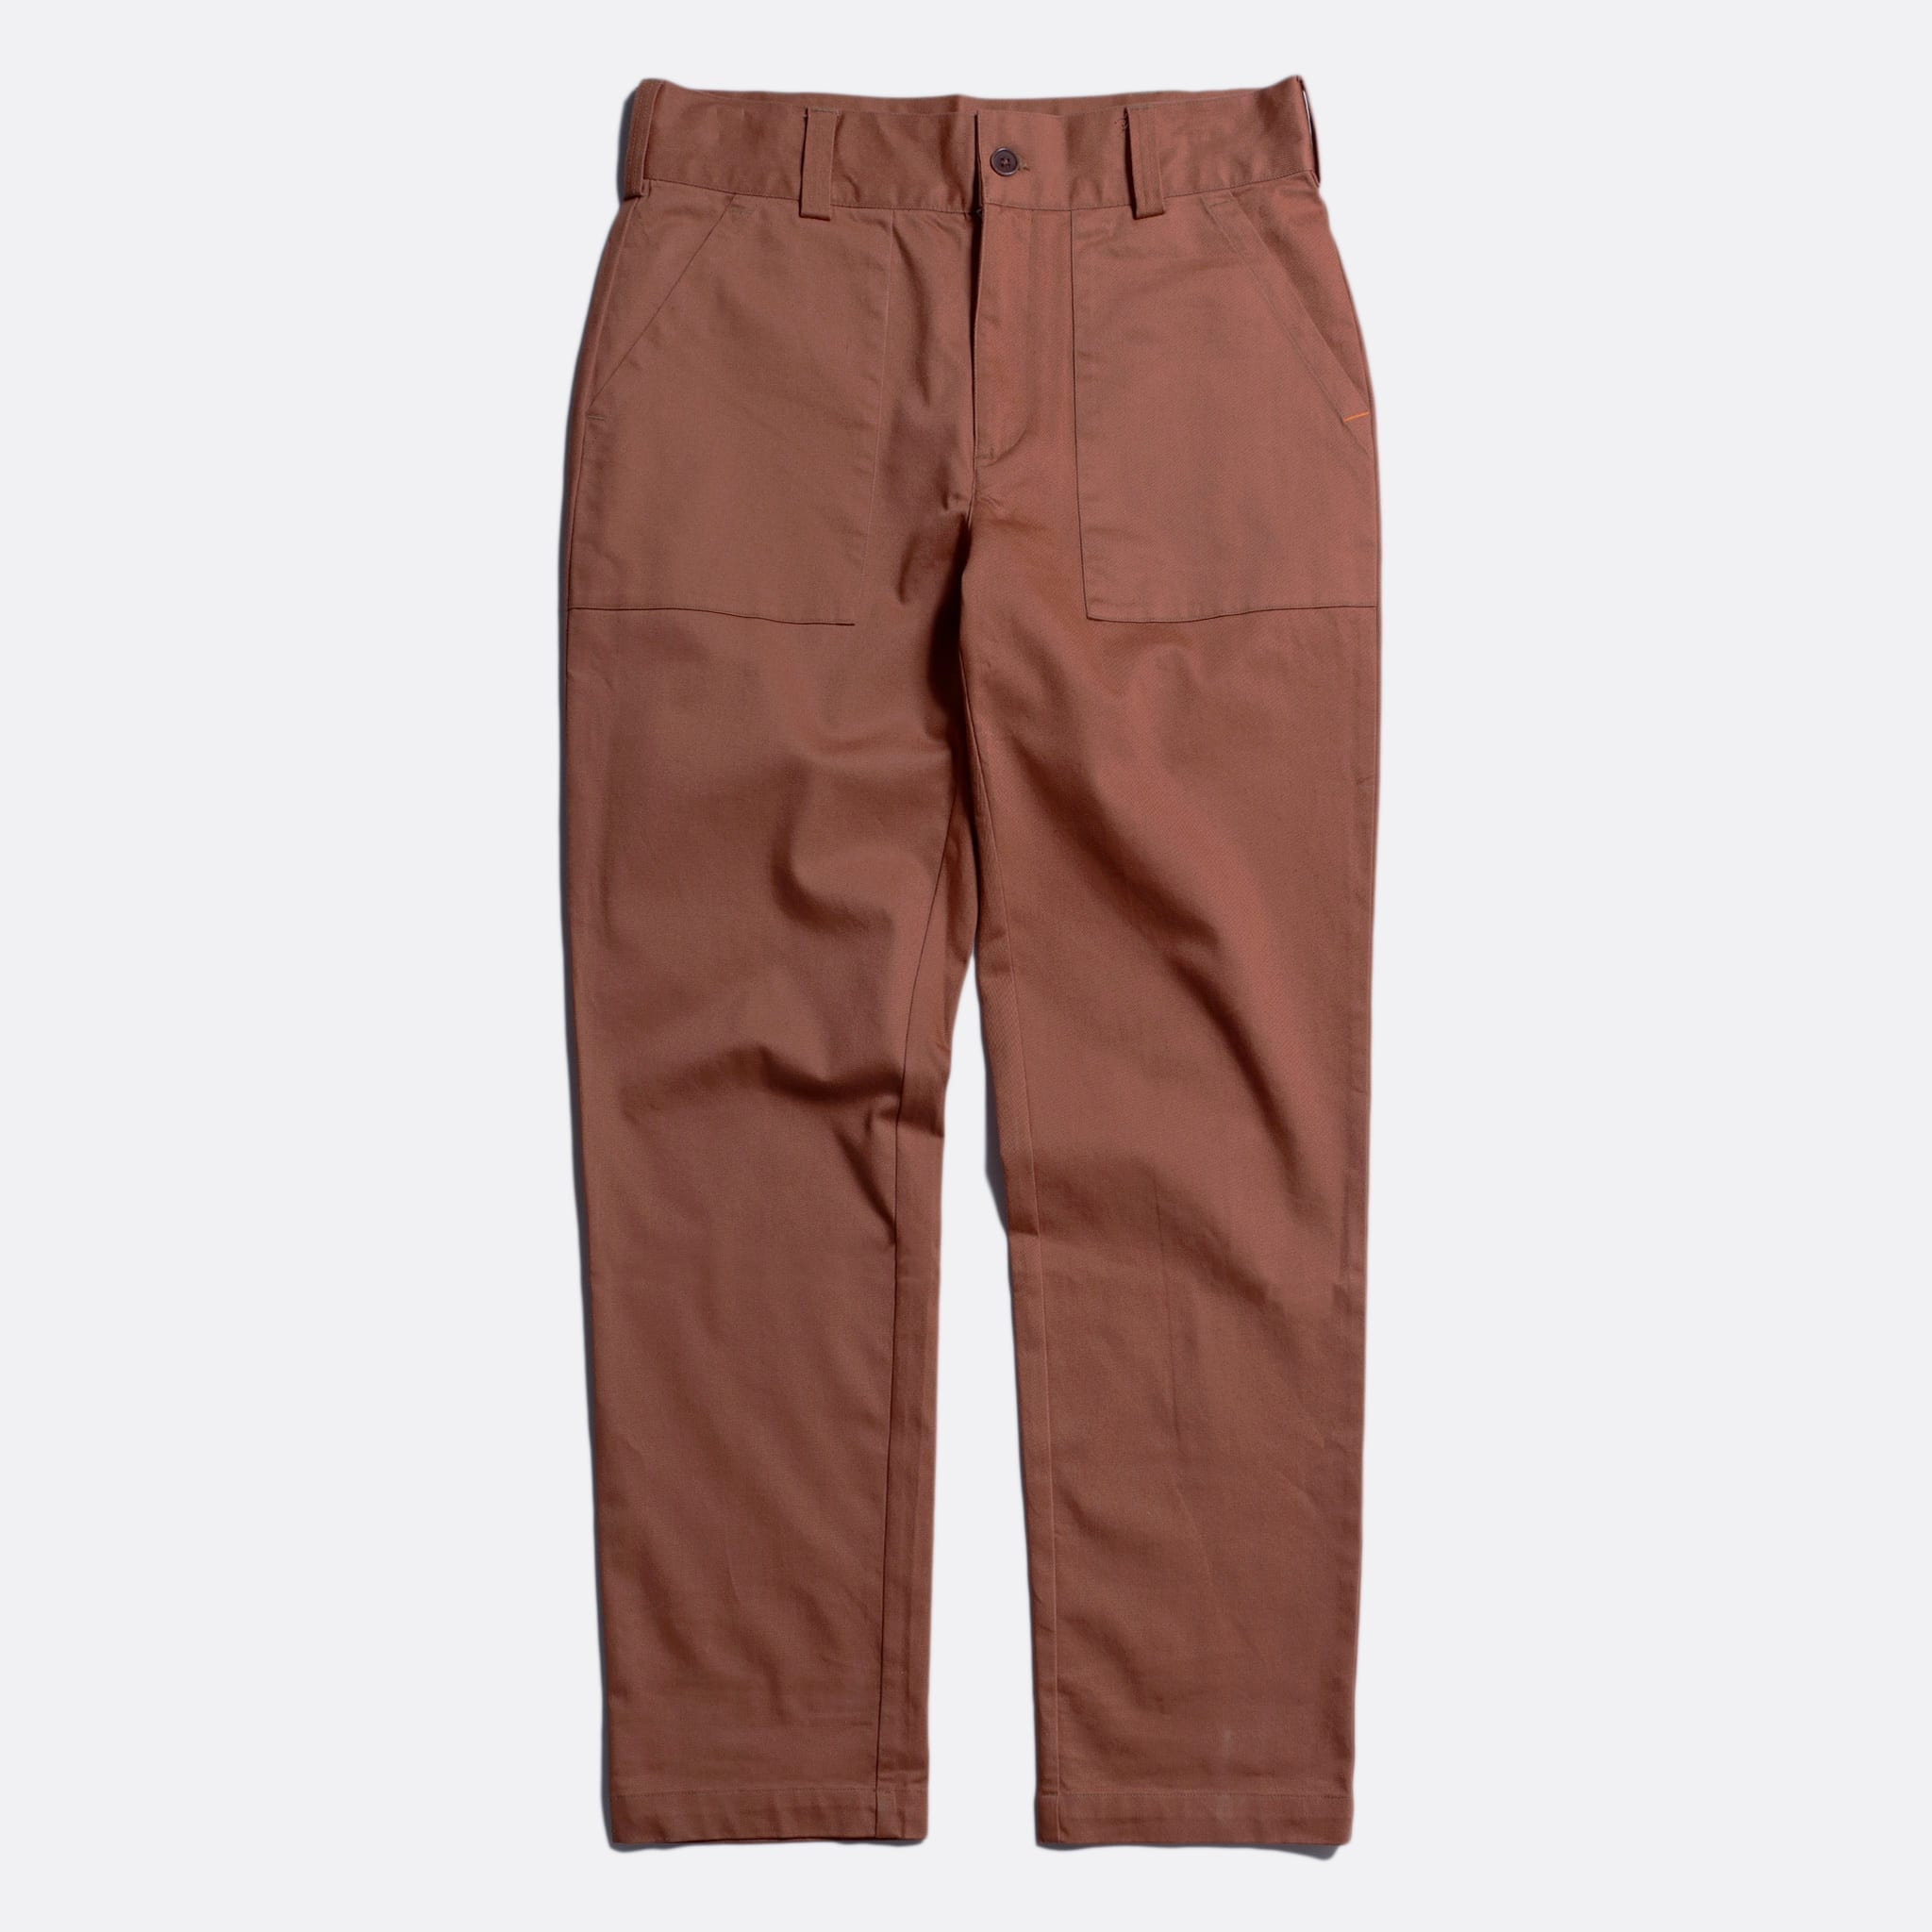 Far Afield Coup Trousers a Thrush Brown Organic Cotton Twill FabricClassic Work